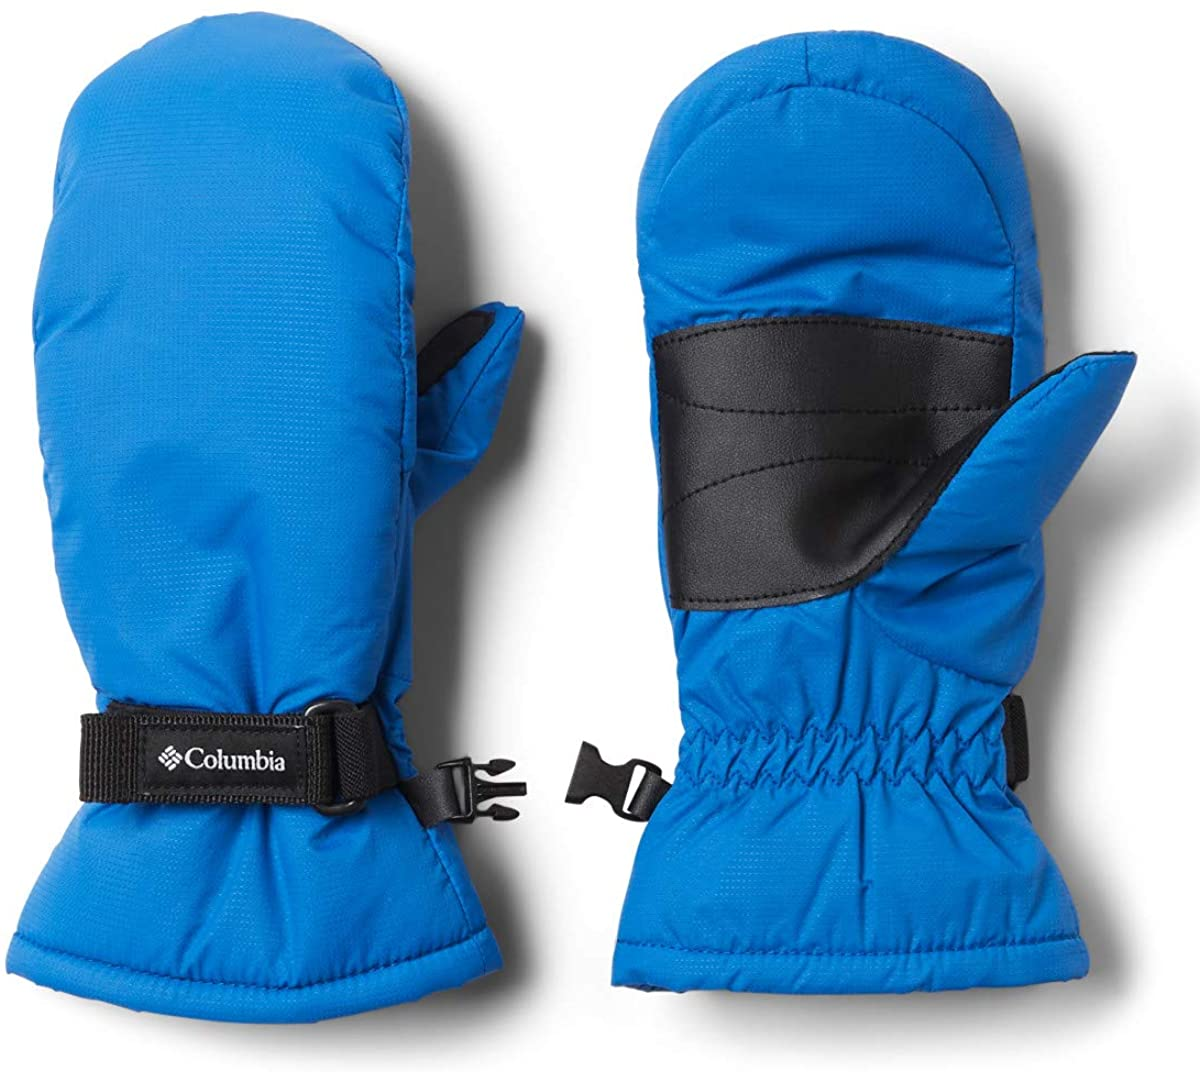 Columbia boys Y Core Mitten Cold Weather Gloves, Bright Indigo, Large US